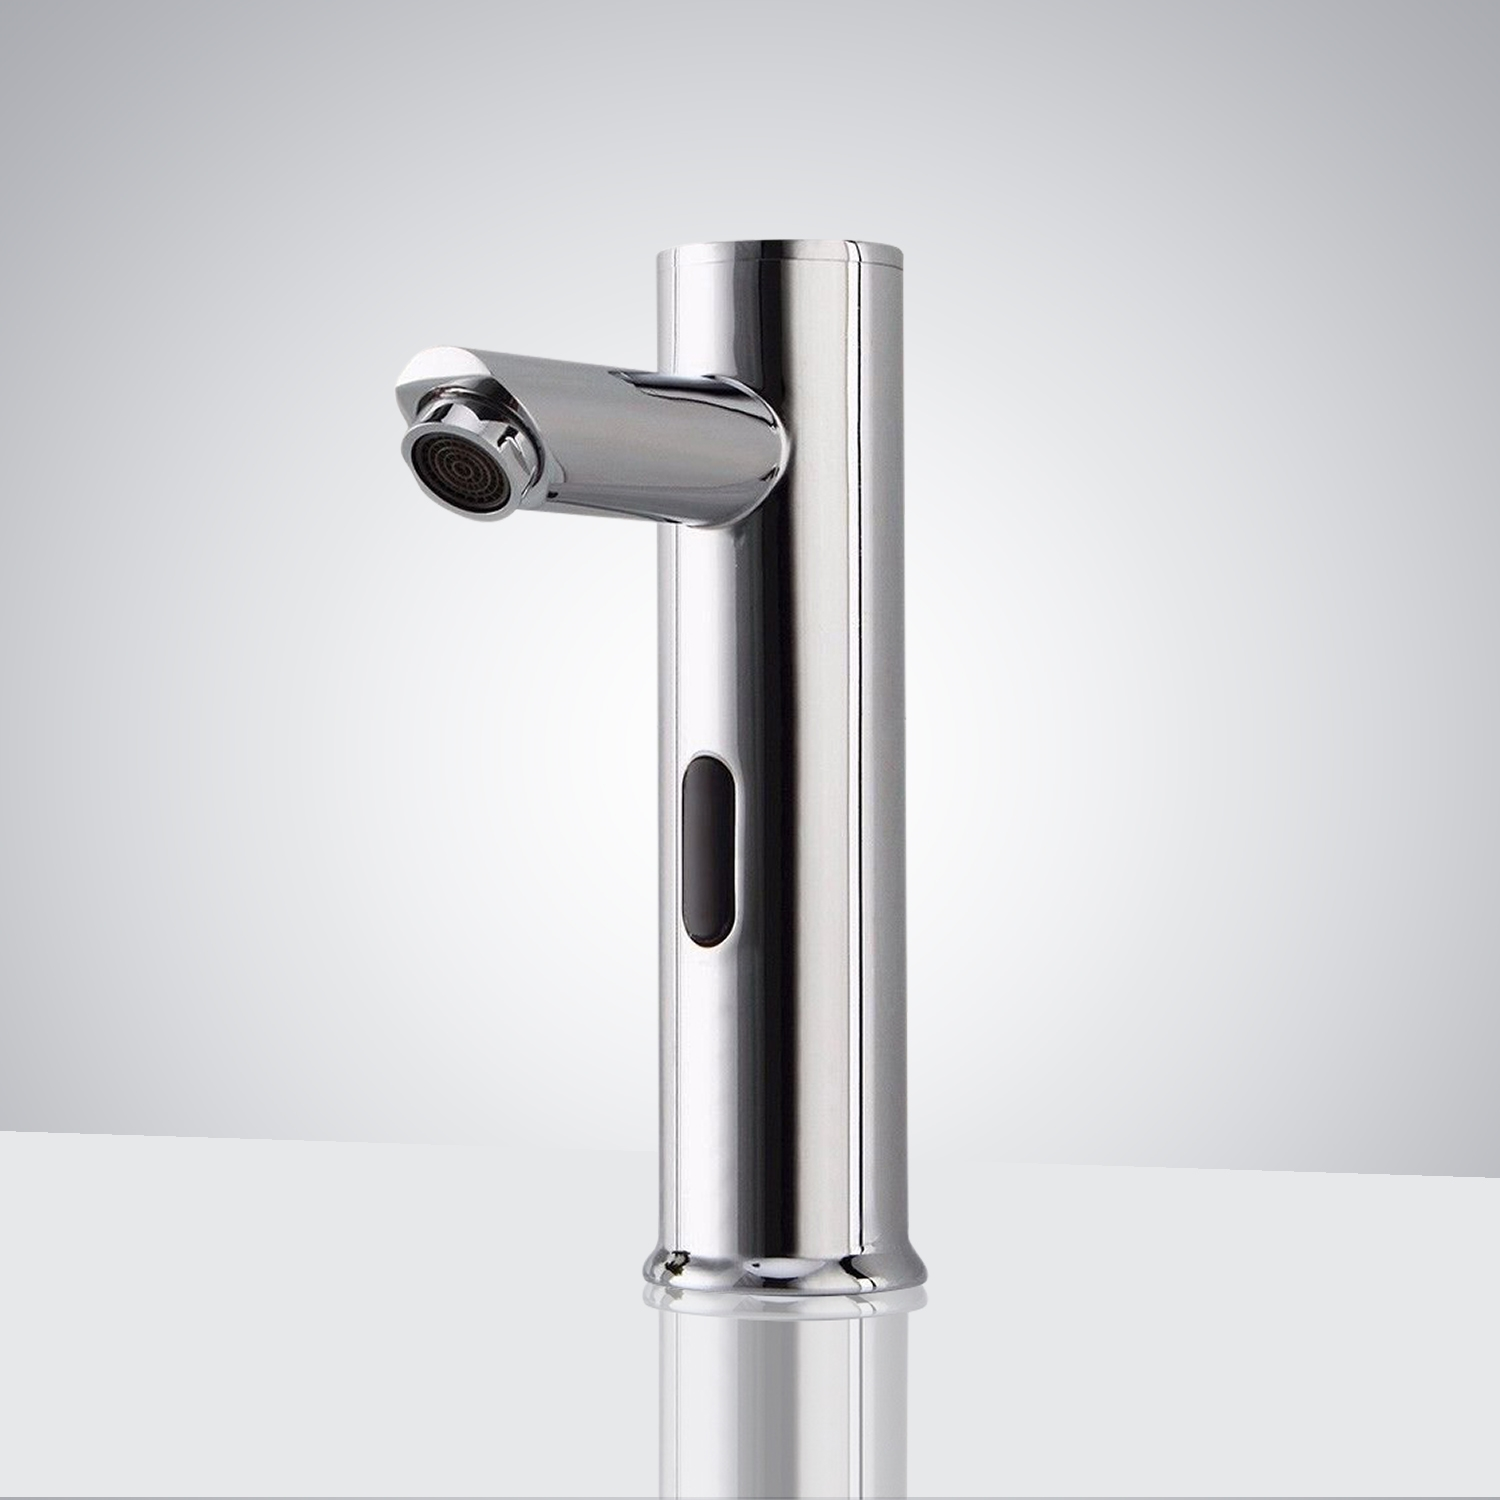 Buy Solo Touchless Sensor Faucet At Bathselect. Lowest Price Guaranteed